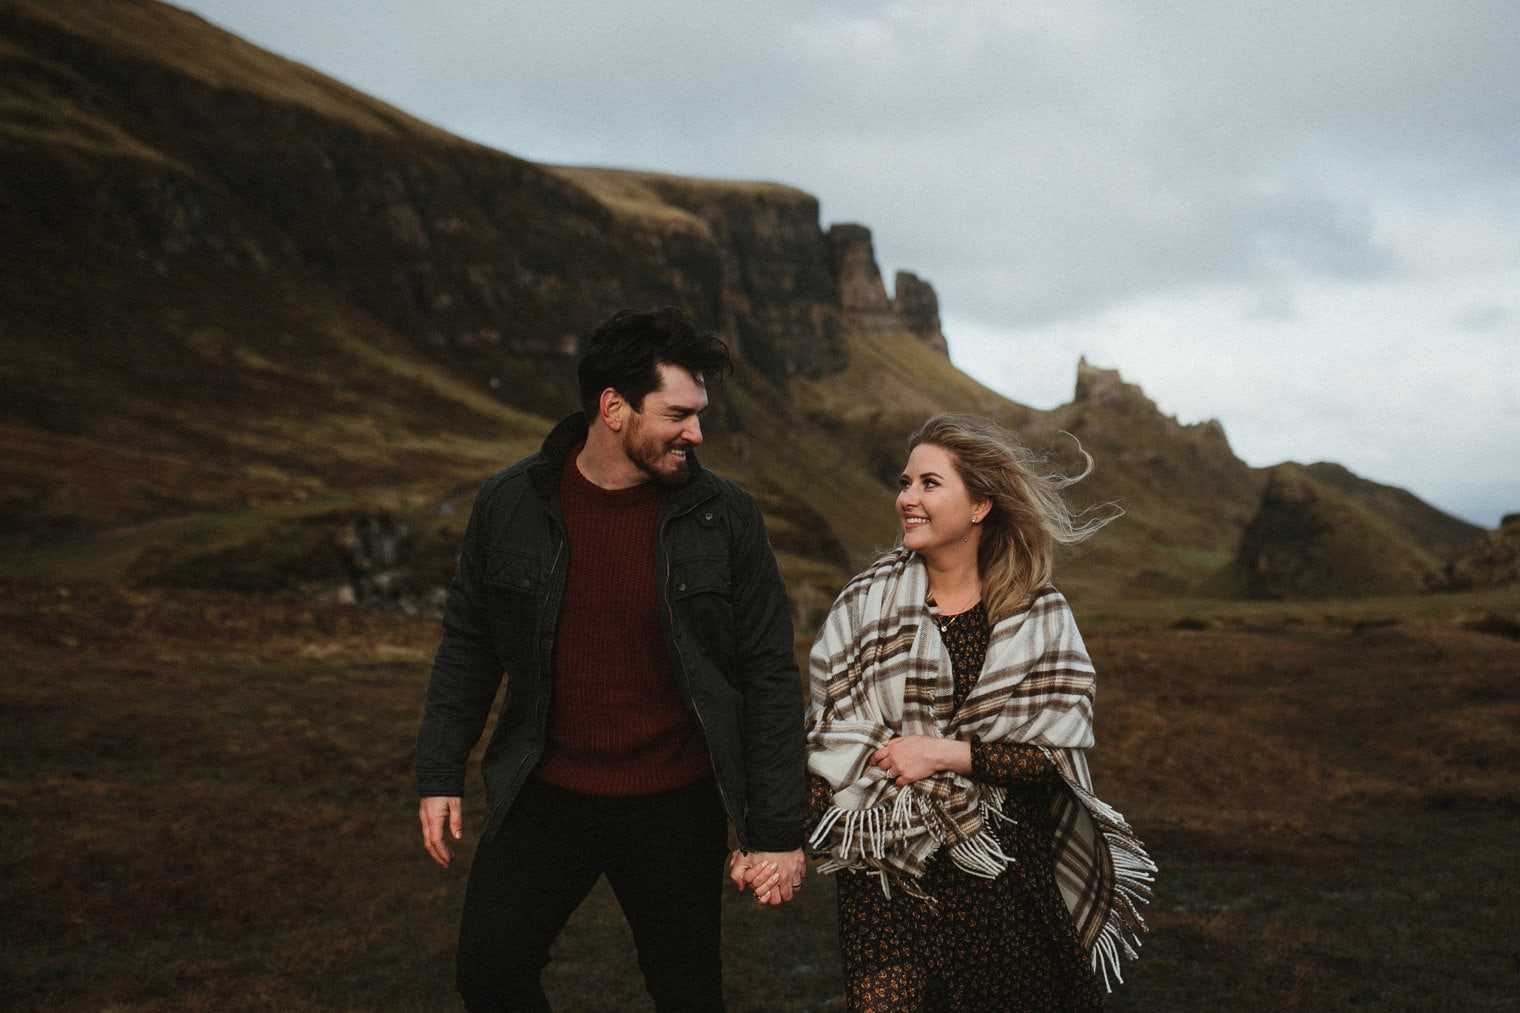 couple walking together during isle of skye adventure session at the Quiraing in Isle of Skye